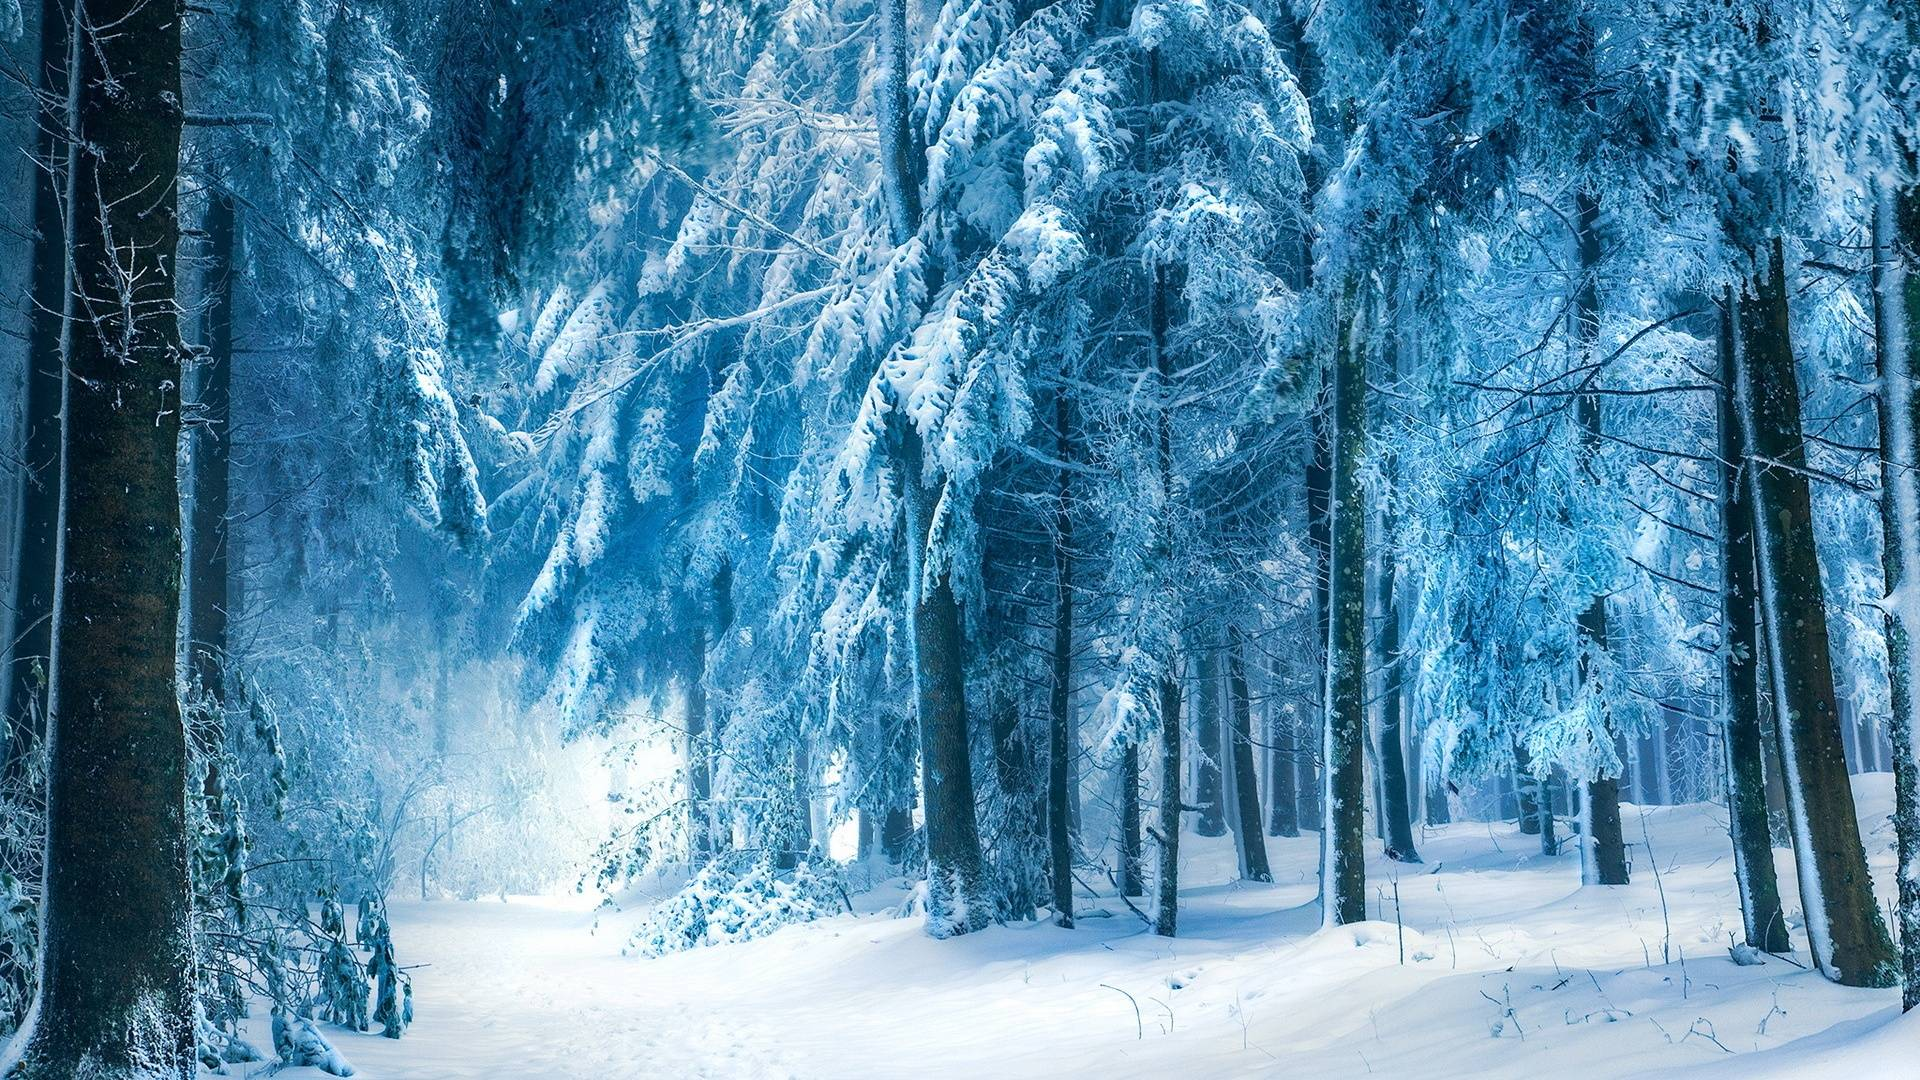 Snowy Forest Wallpapers - Wallpaper Cave - photo#13